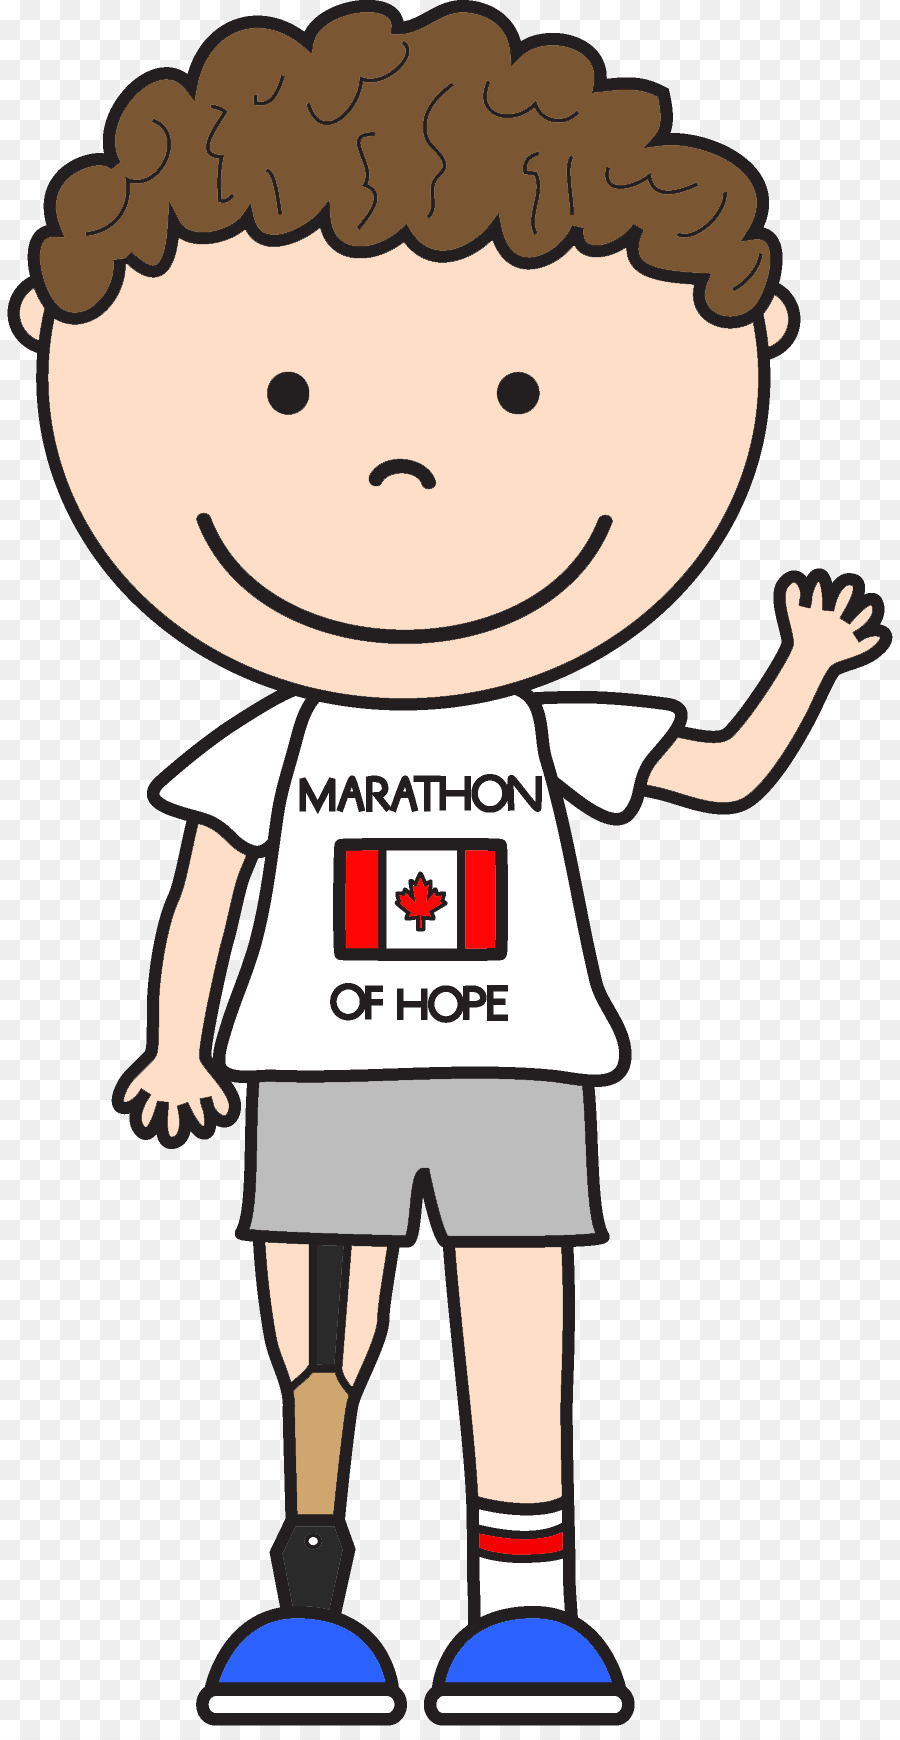 900x1740 Terry Fox Run Le Marathon De L'Espoir Child Clip Art